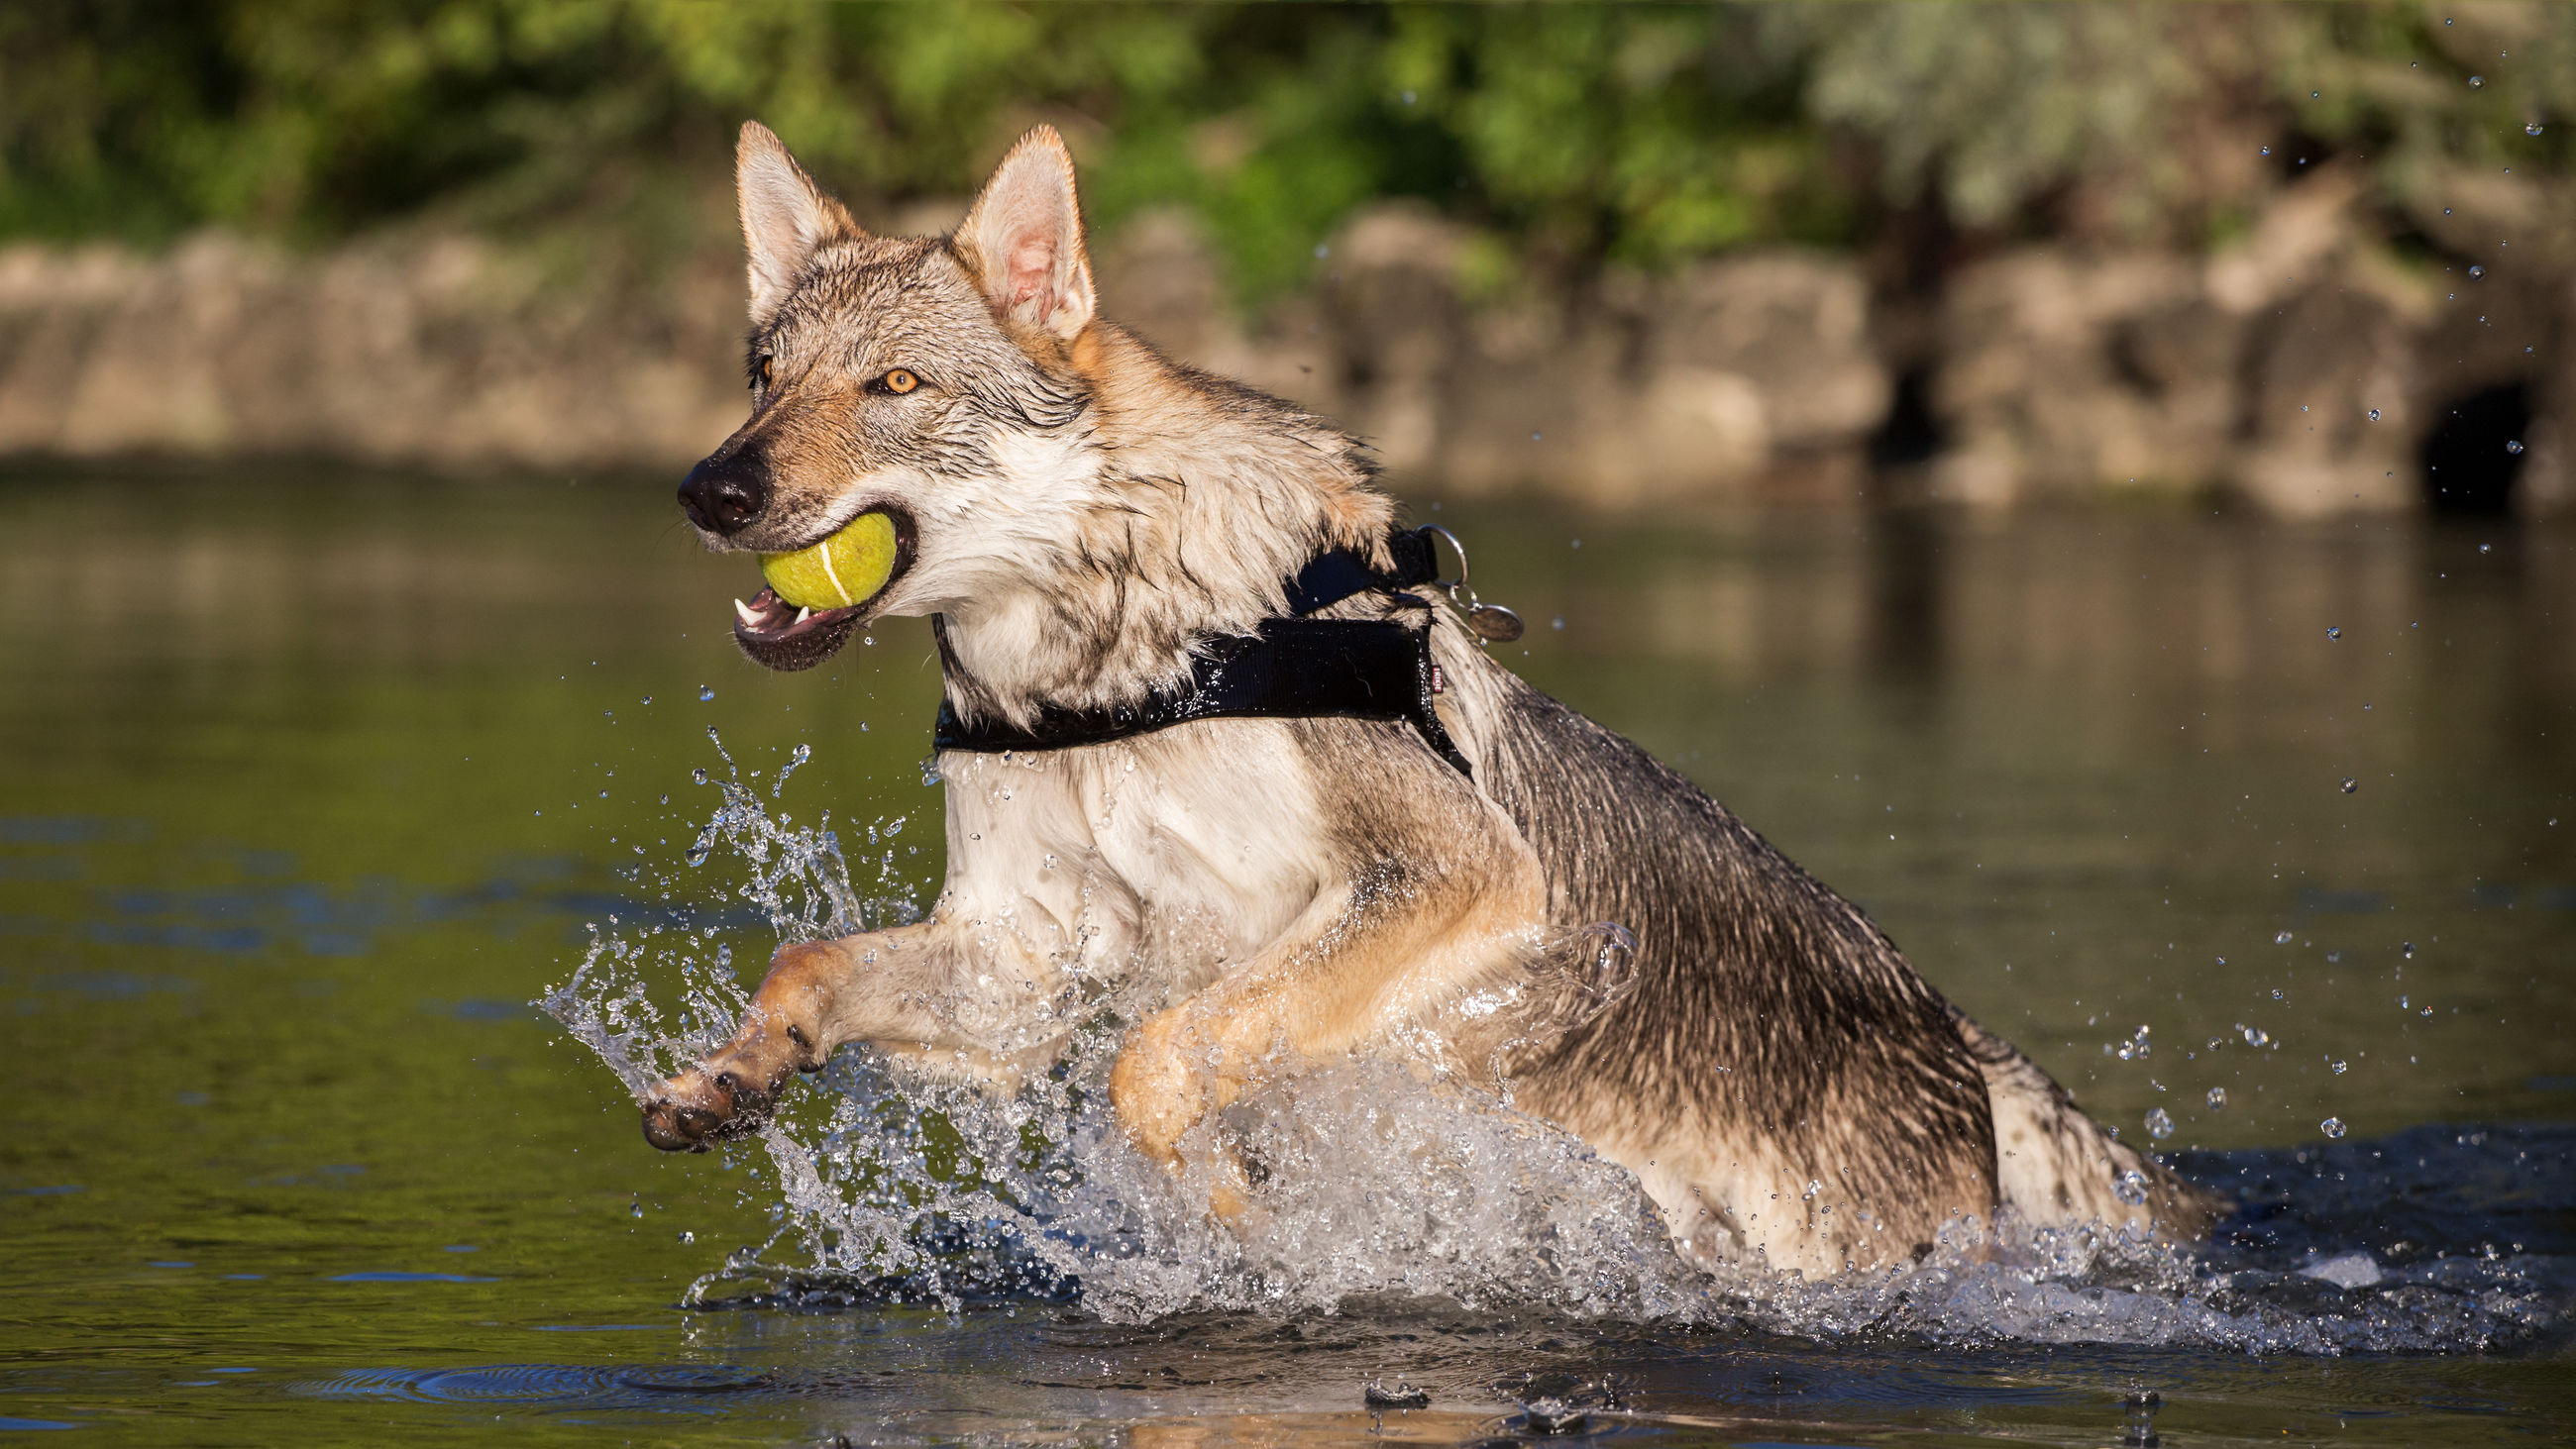 Czechoslovakian wolfdog retrieving a ball from water, italy